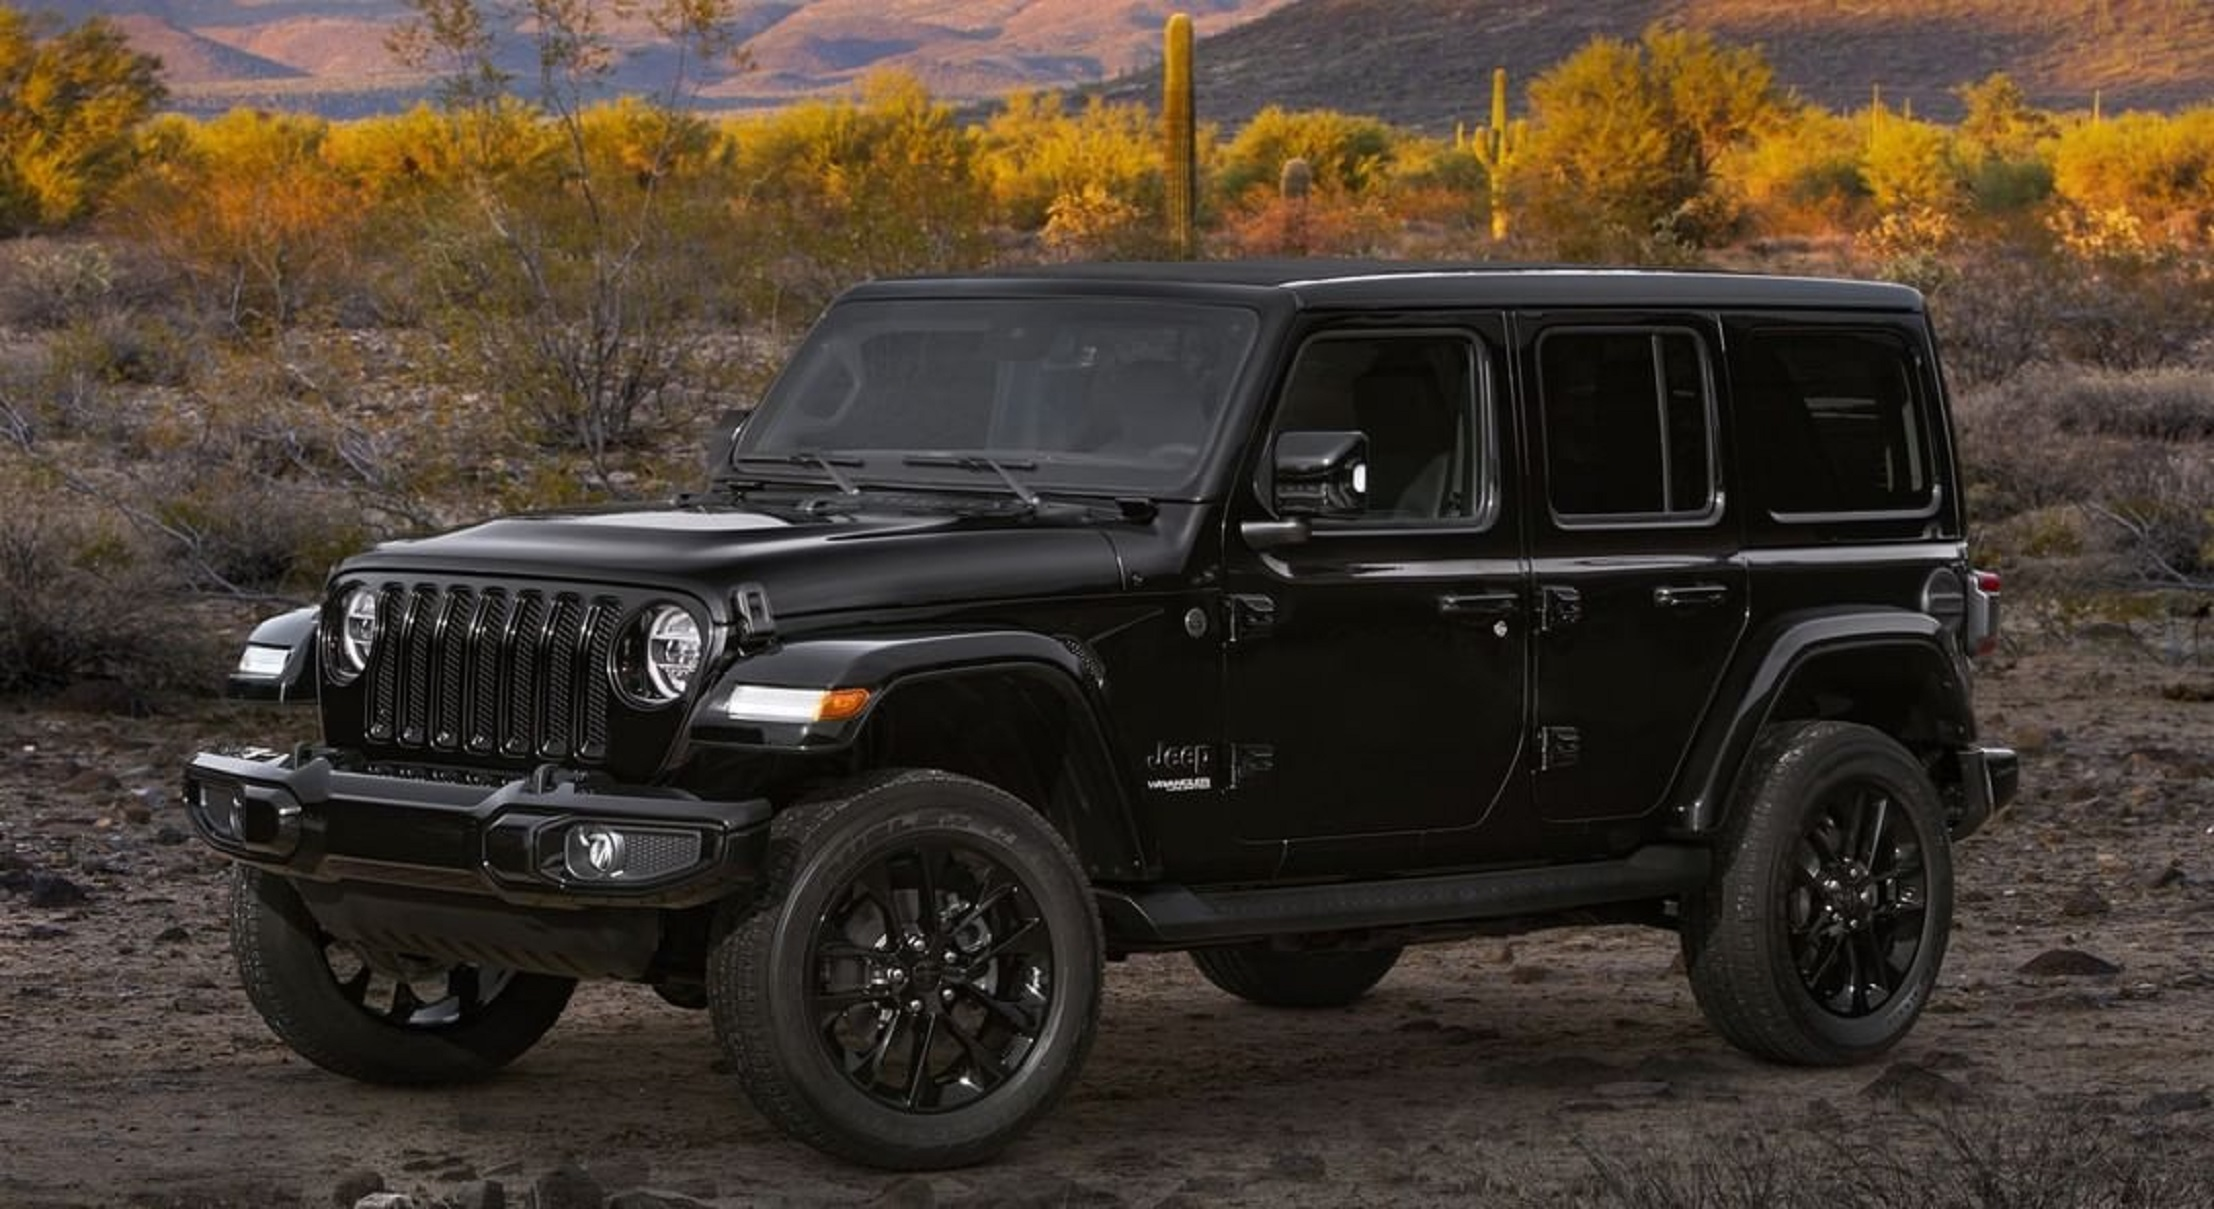 2021 Jeep Wrangler Unlimited Photos